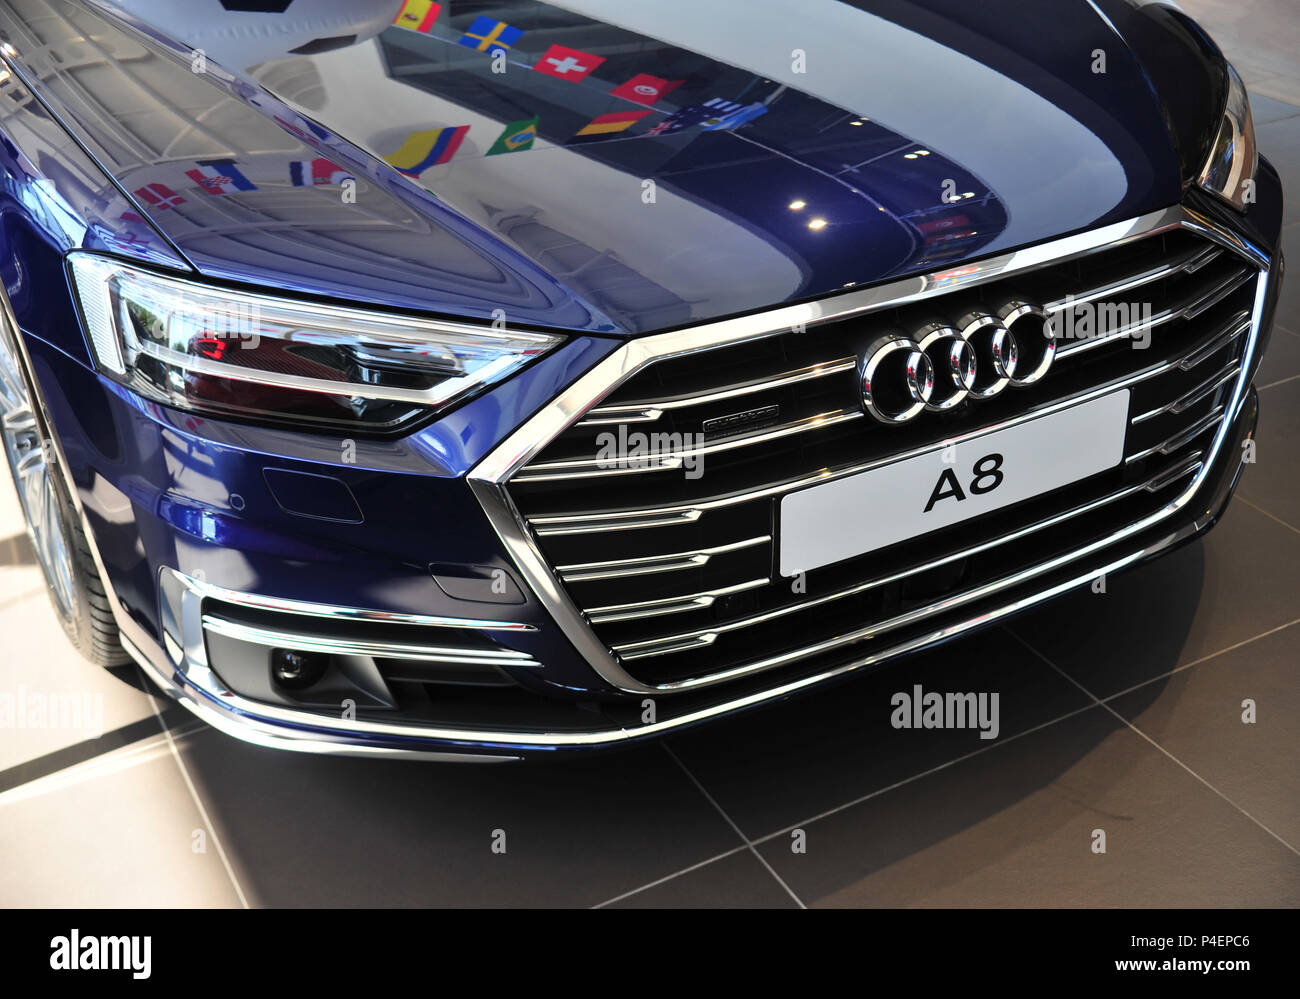 Car Front View Of The Latest New Model Audi A8 Car On Sale At Audi